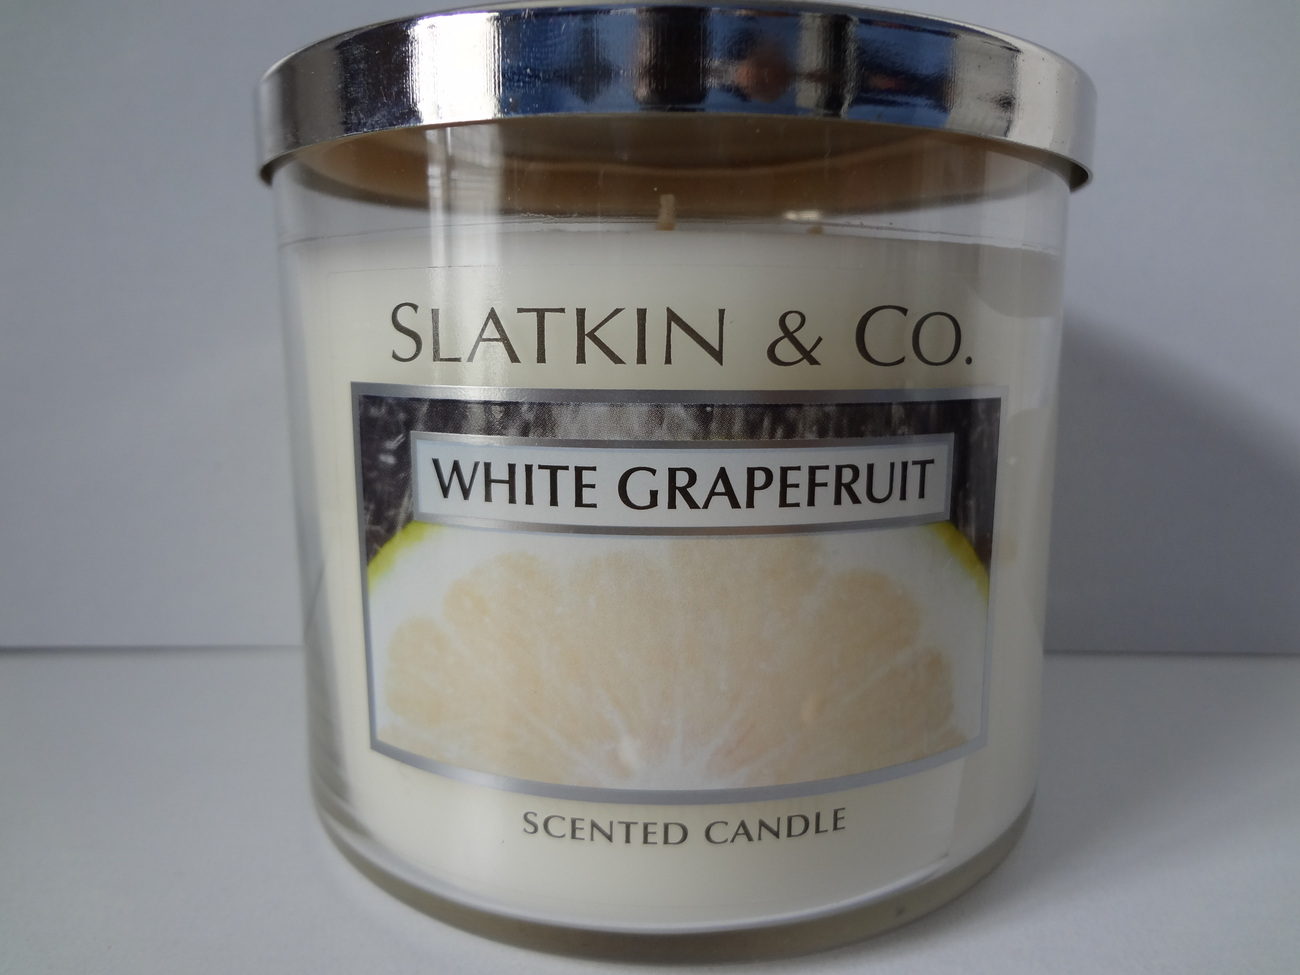 Bath & Body Works Slatkin & Co. WHITE GRAPEFRUIT Scented Candle 14.5 oz / 411 g